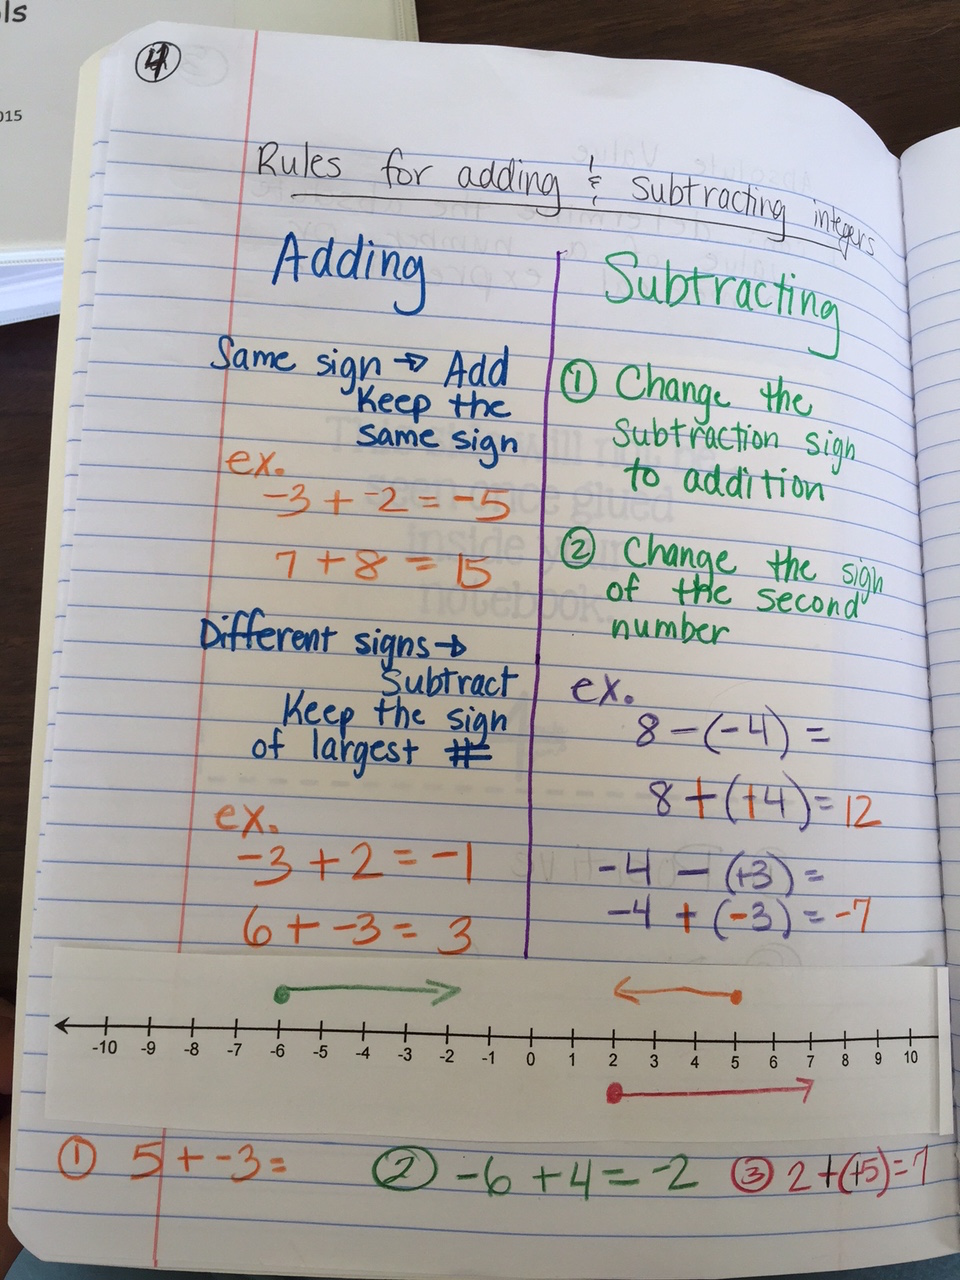 Mrs. Sessions - 7th Grade - Advanced Math: August 9th